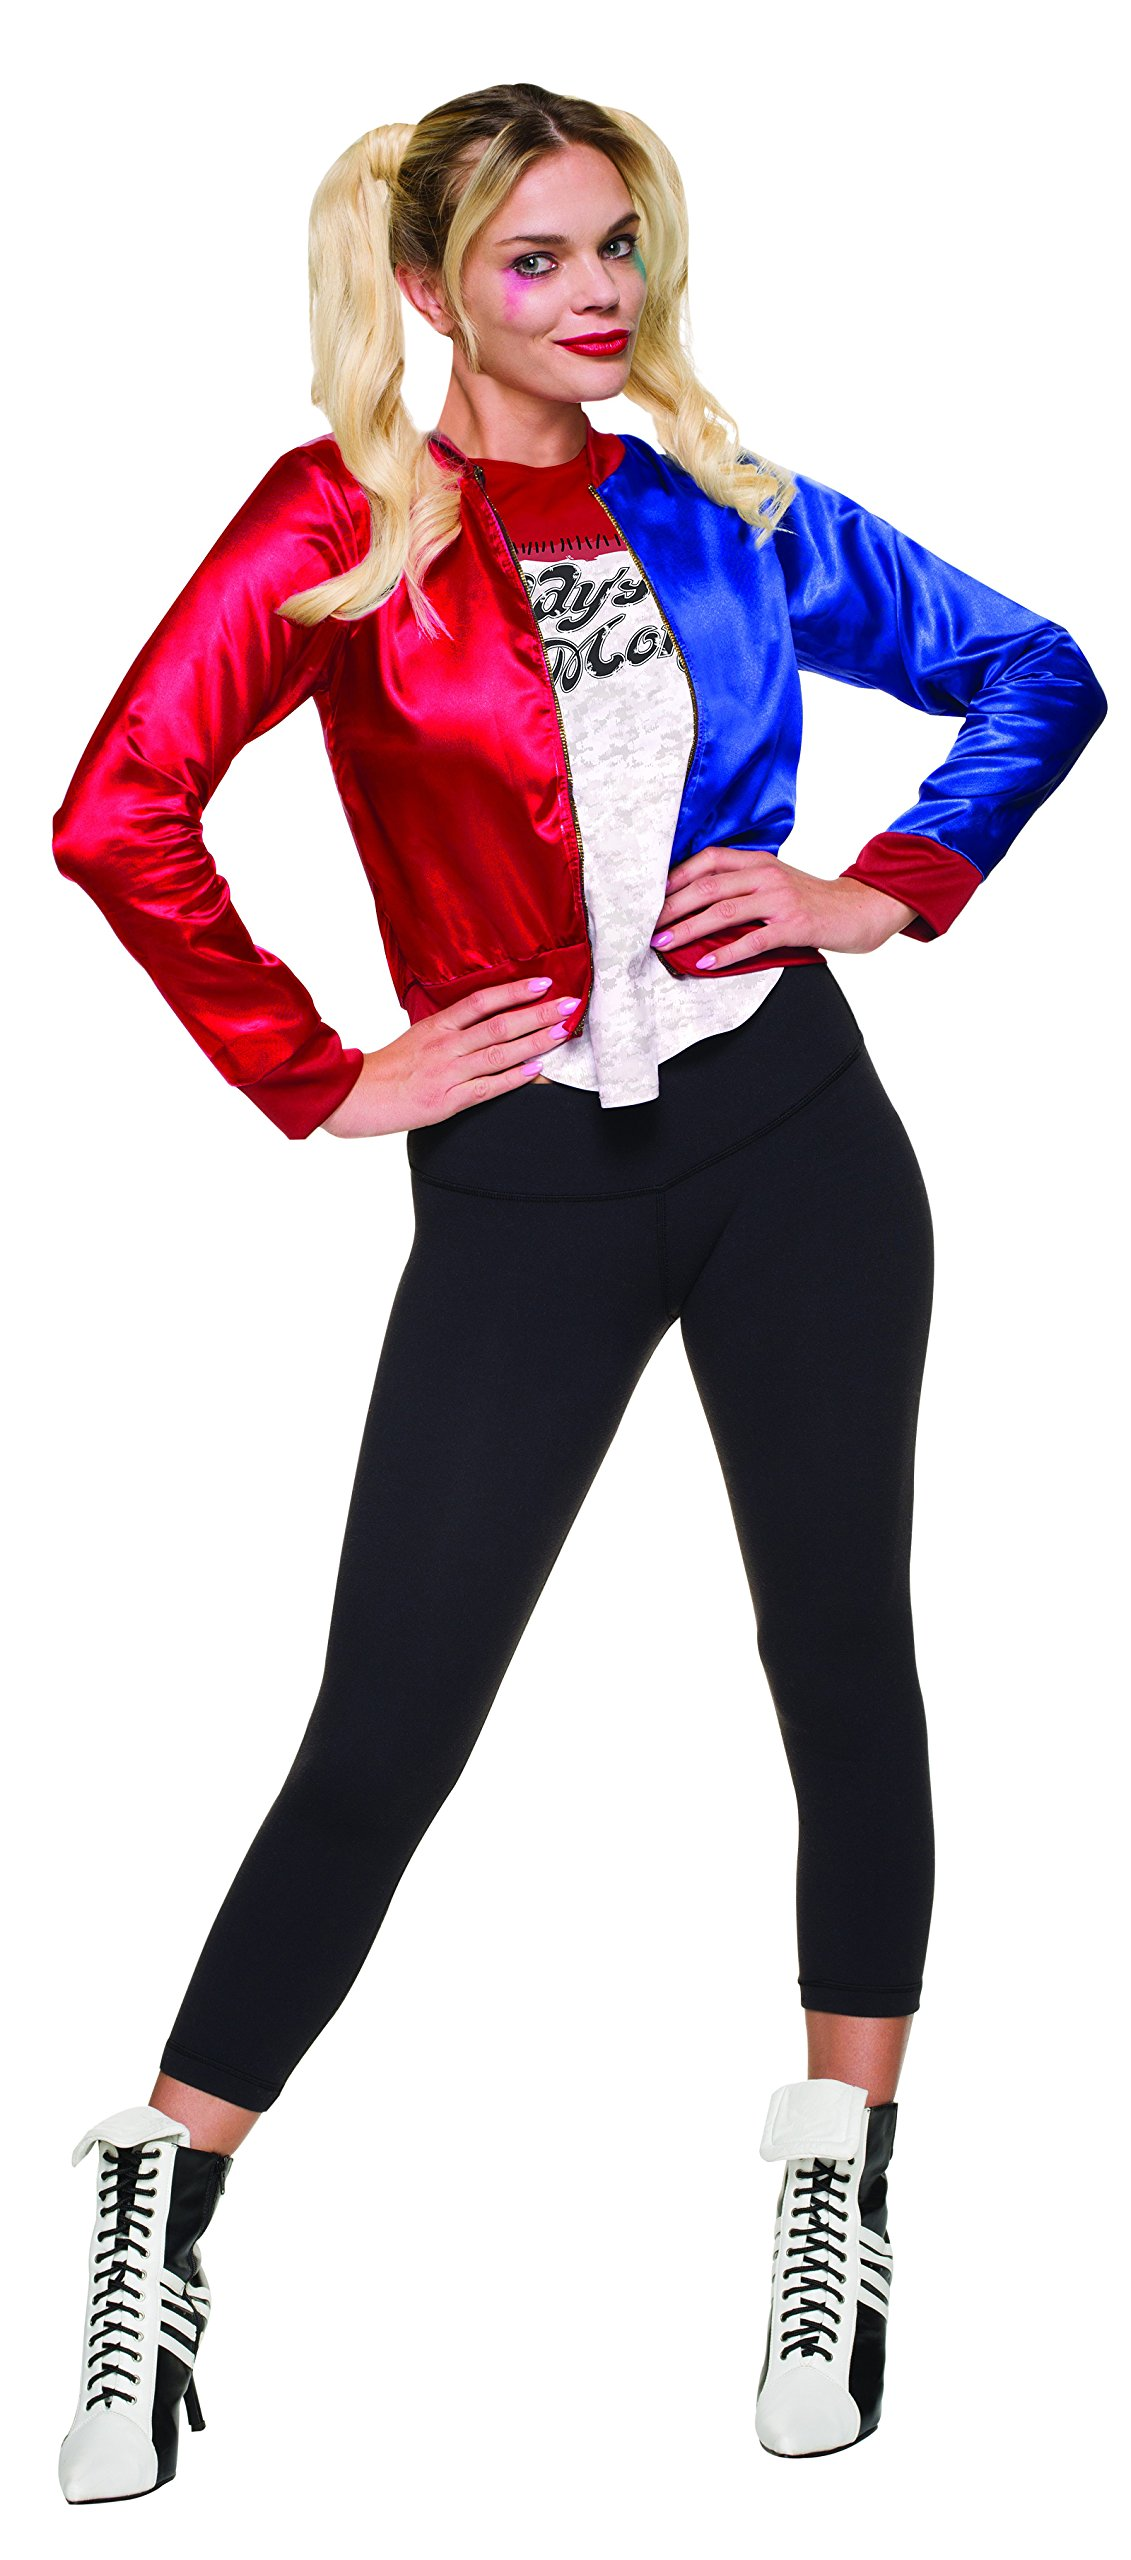 820078 (Large) Harley Quinn Costume Adult Kit by Endless Road